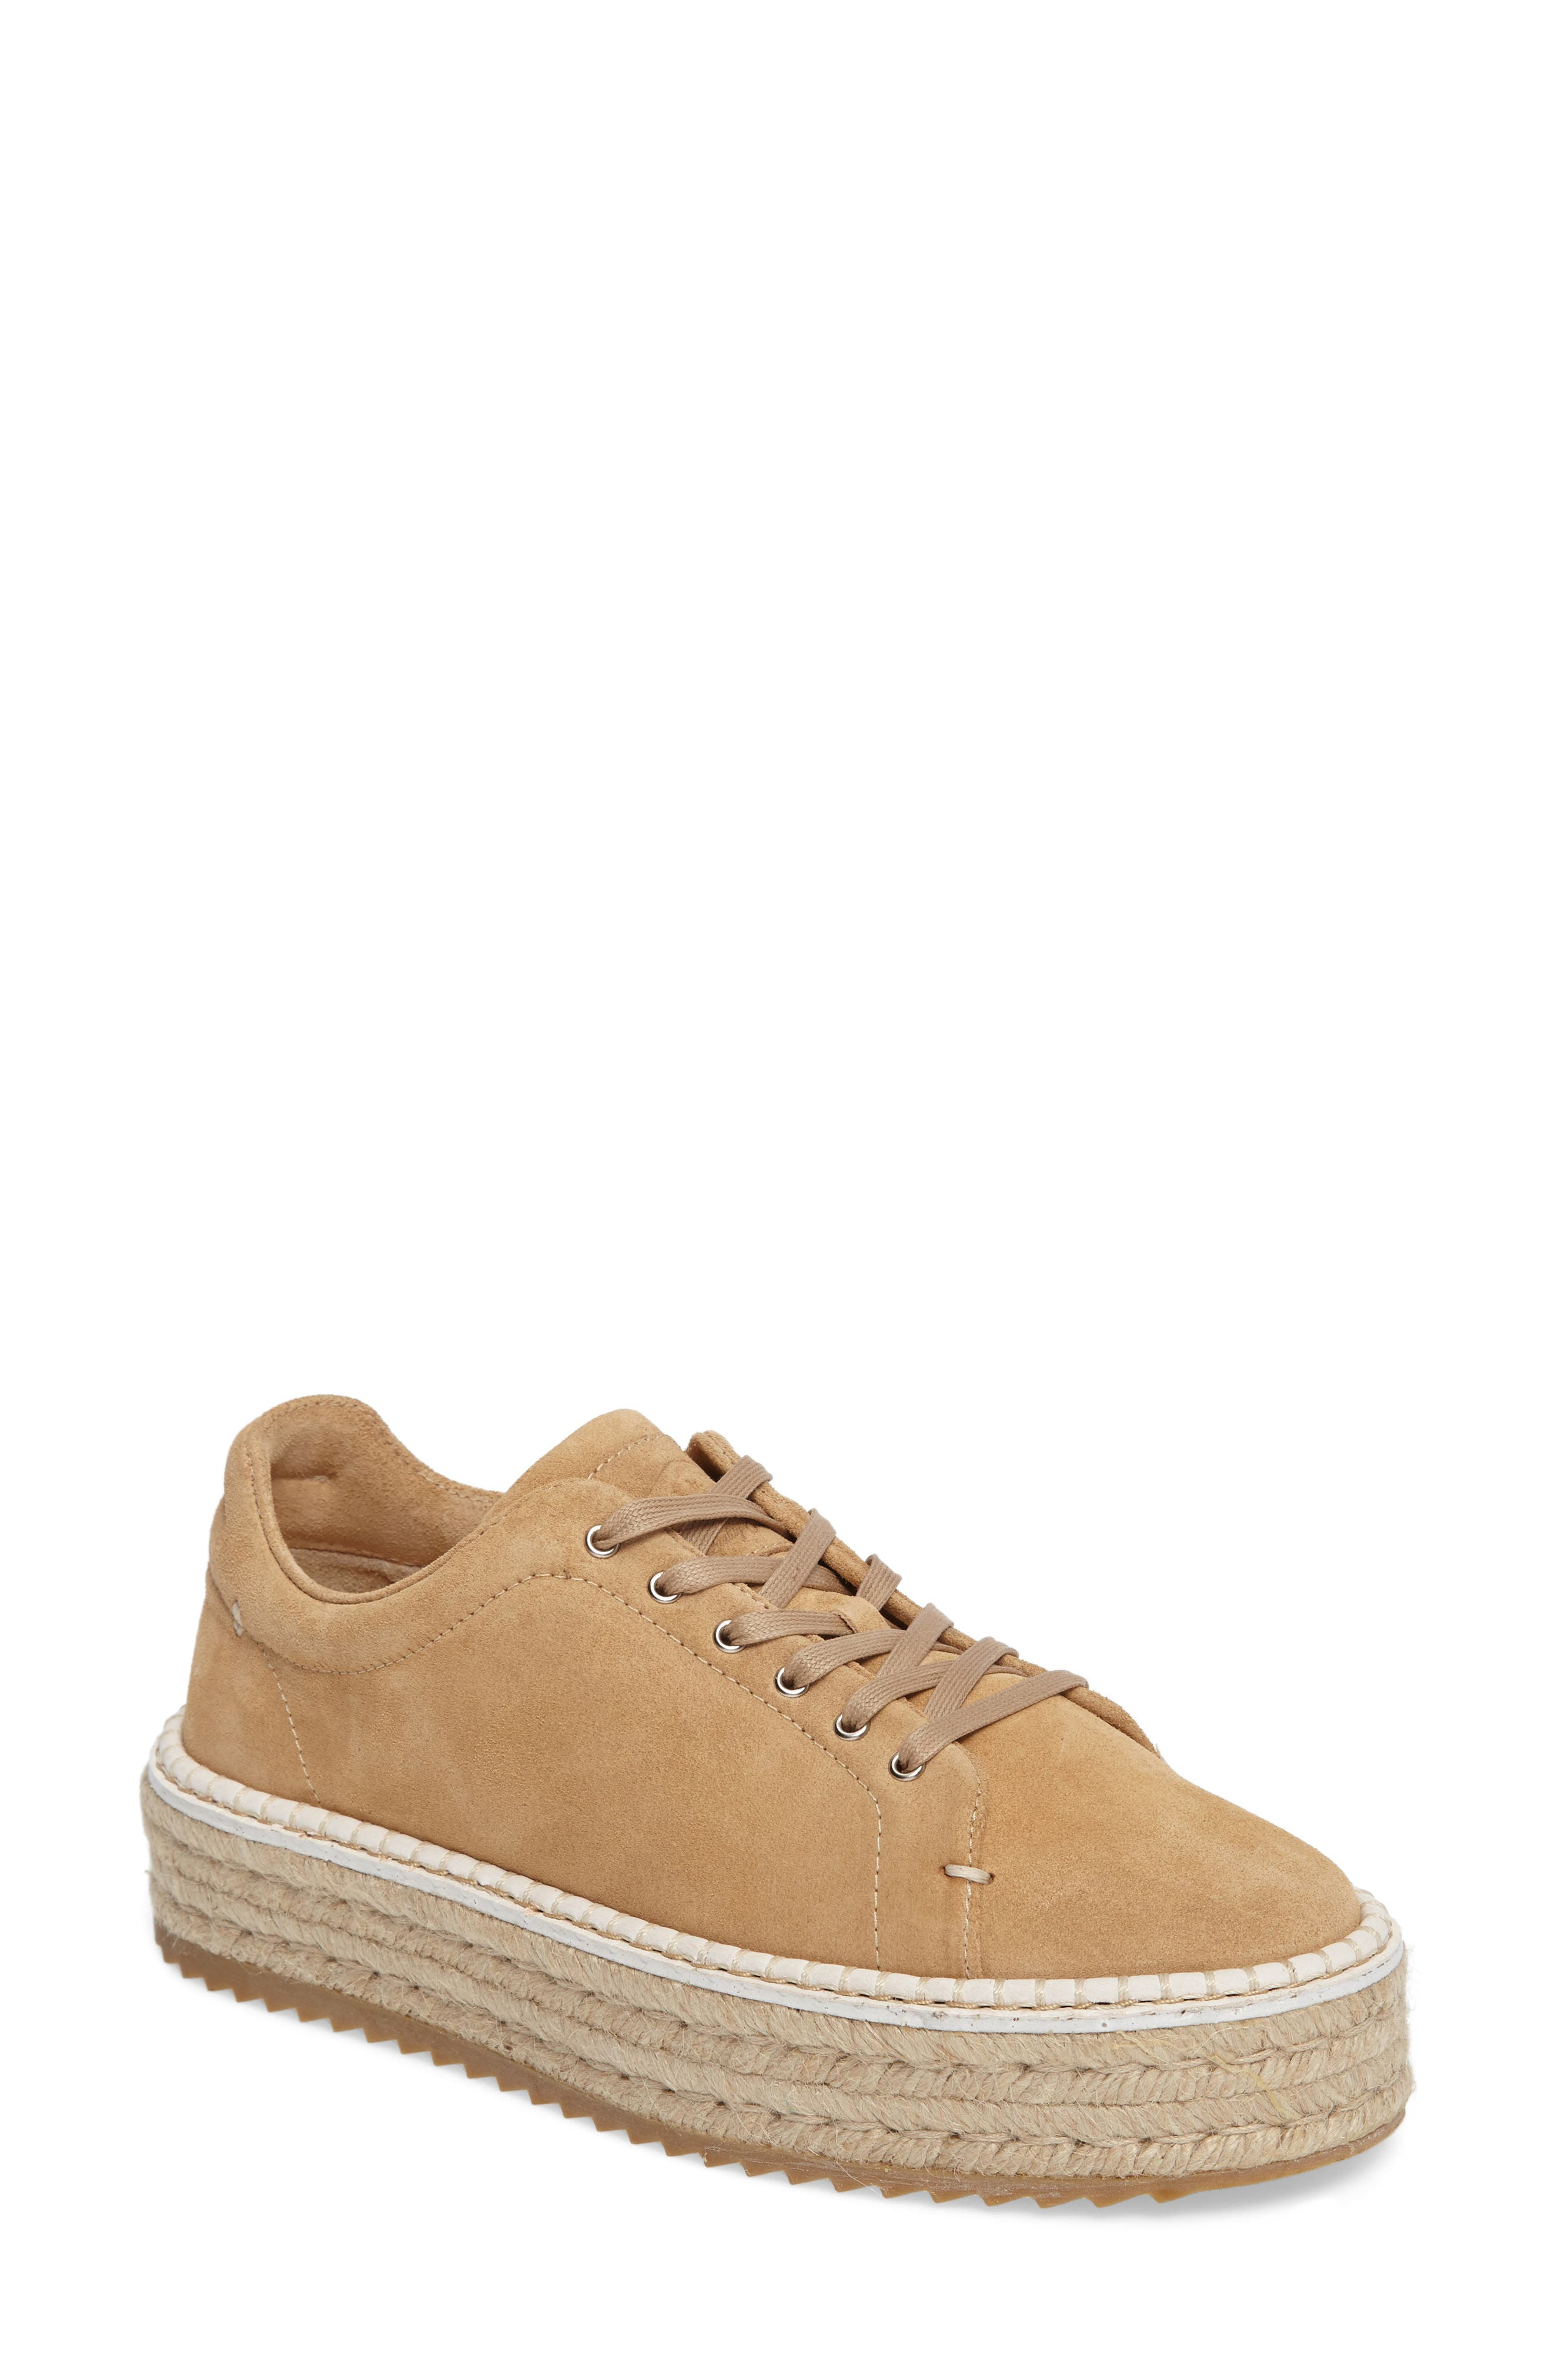 Alternate Image 1 Selected - rag & bone Kent Espadrille Sneaker (Women)